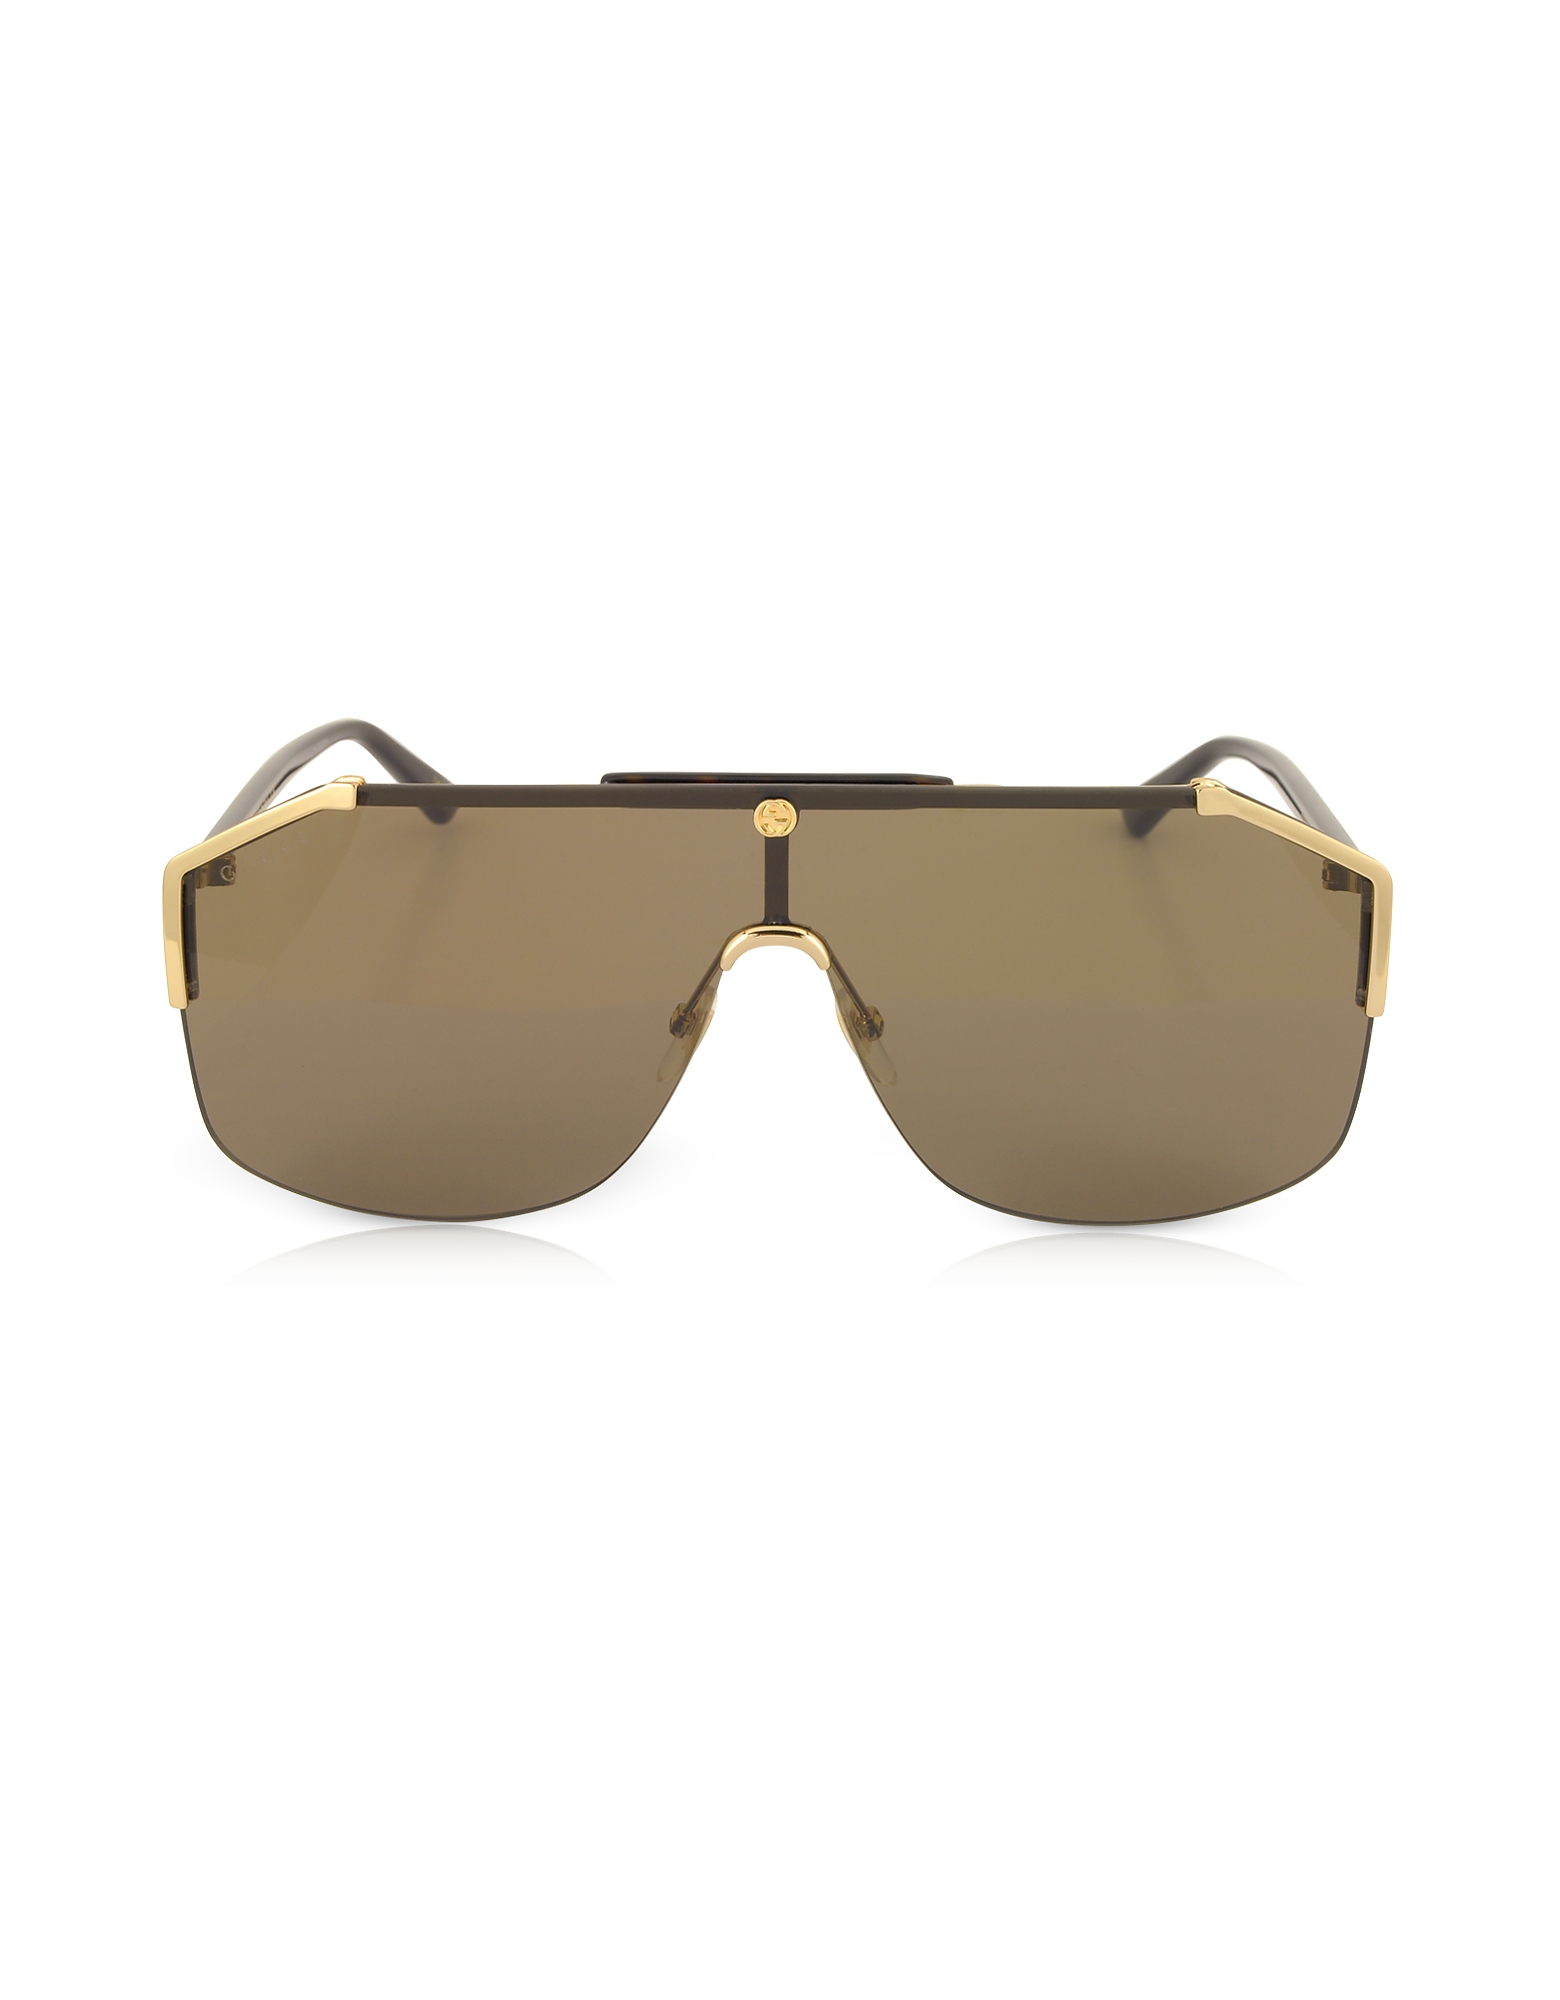 Gucci Designer Sunglasses, GG0291S Rectangular-frame Gold Metal Sunglasses